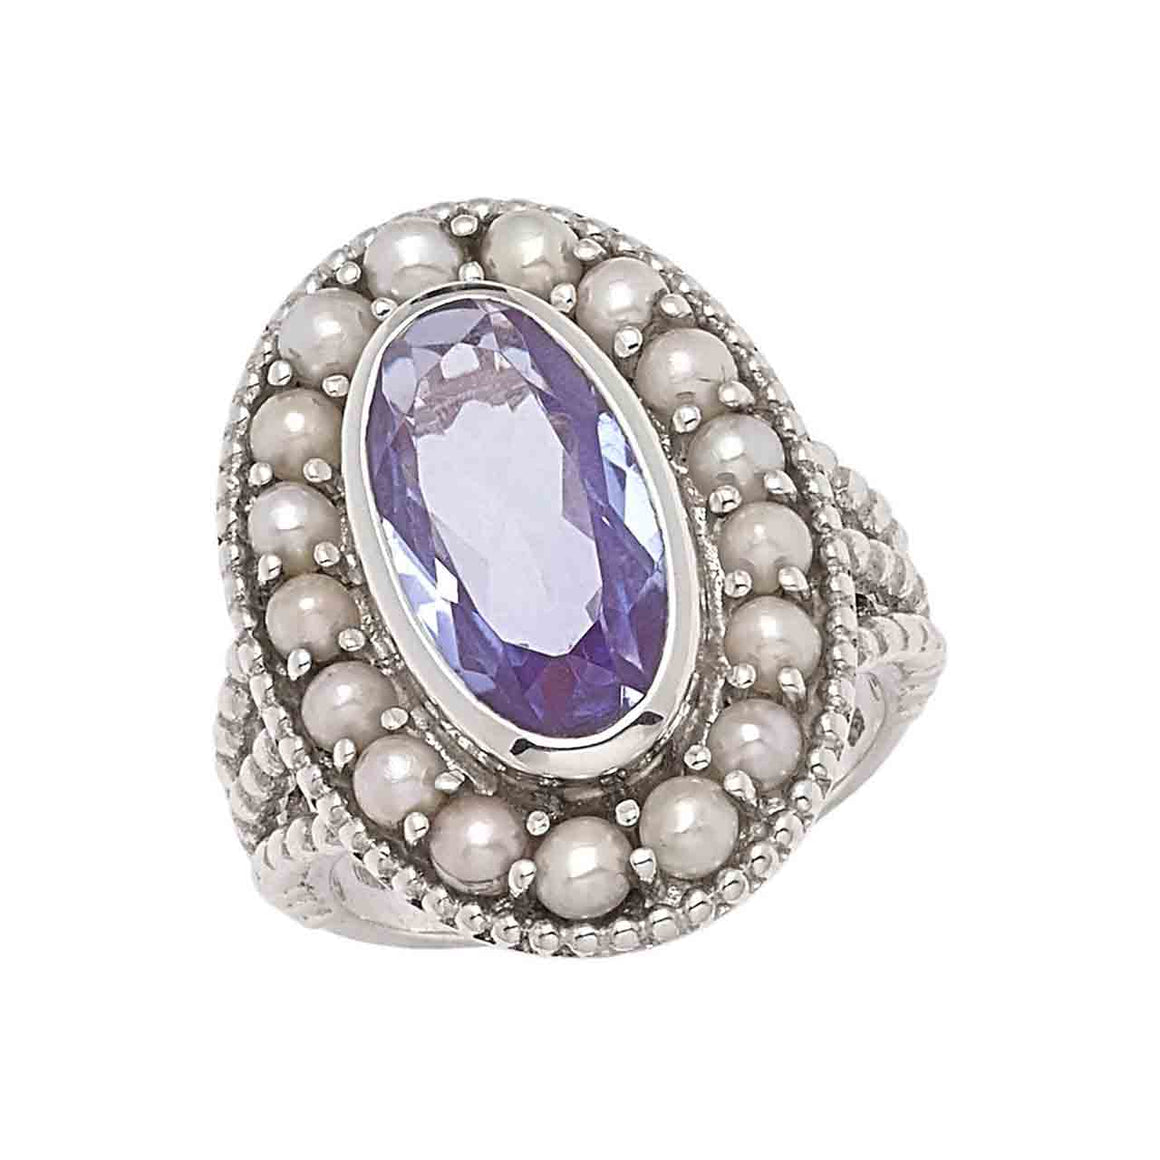 Lavender Quartz and Feshwater Pearl Ring